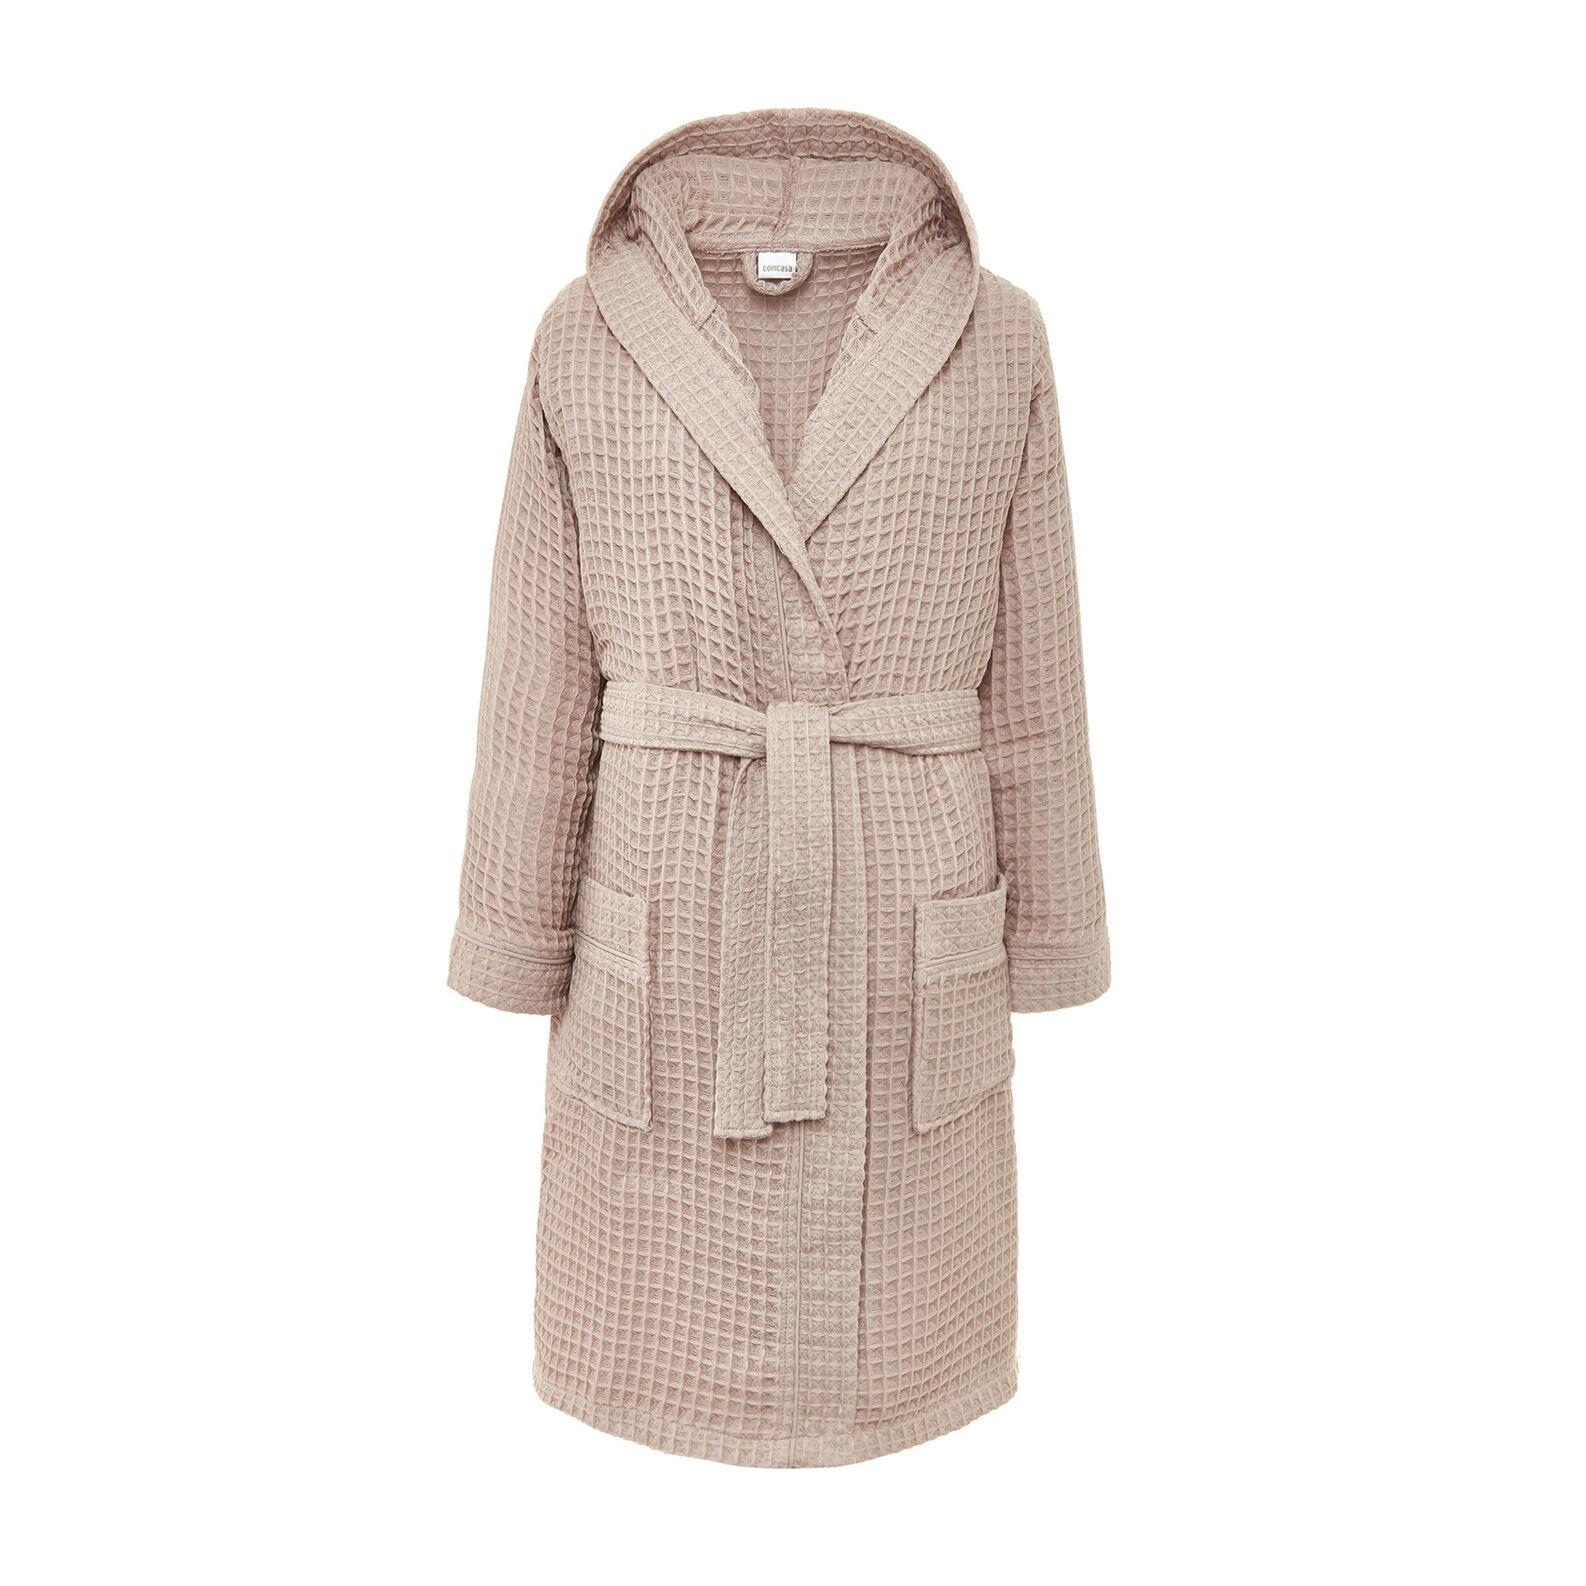 Honeycomb bathrobe in pure cotton solid colour